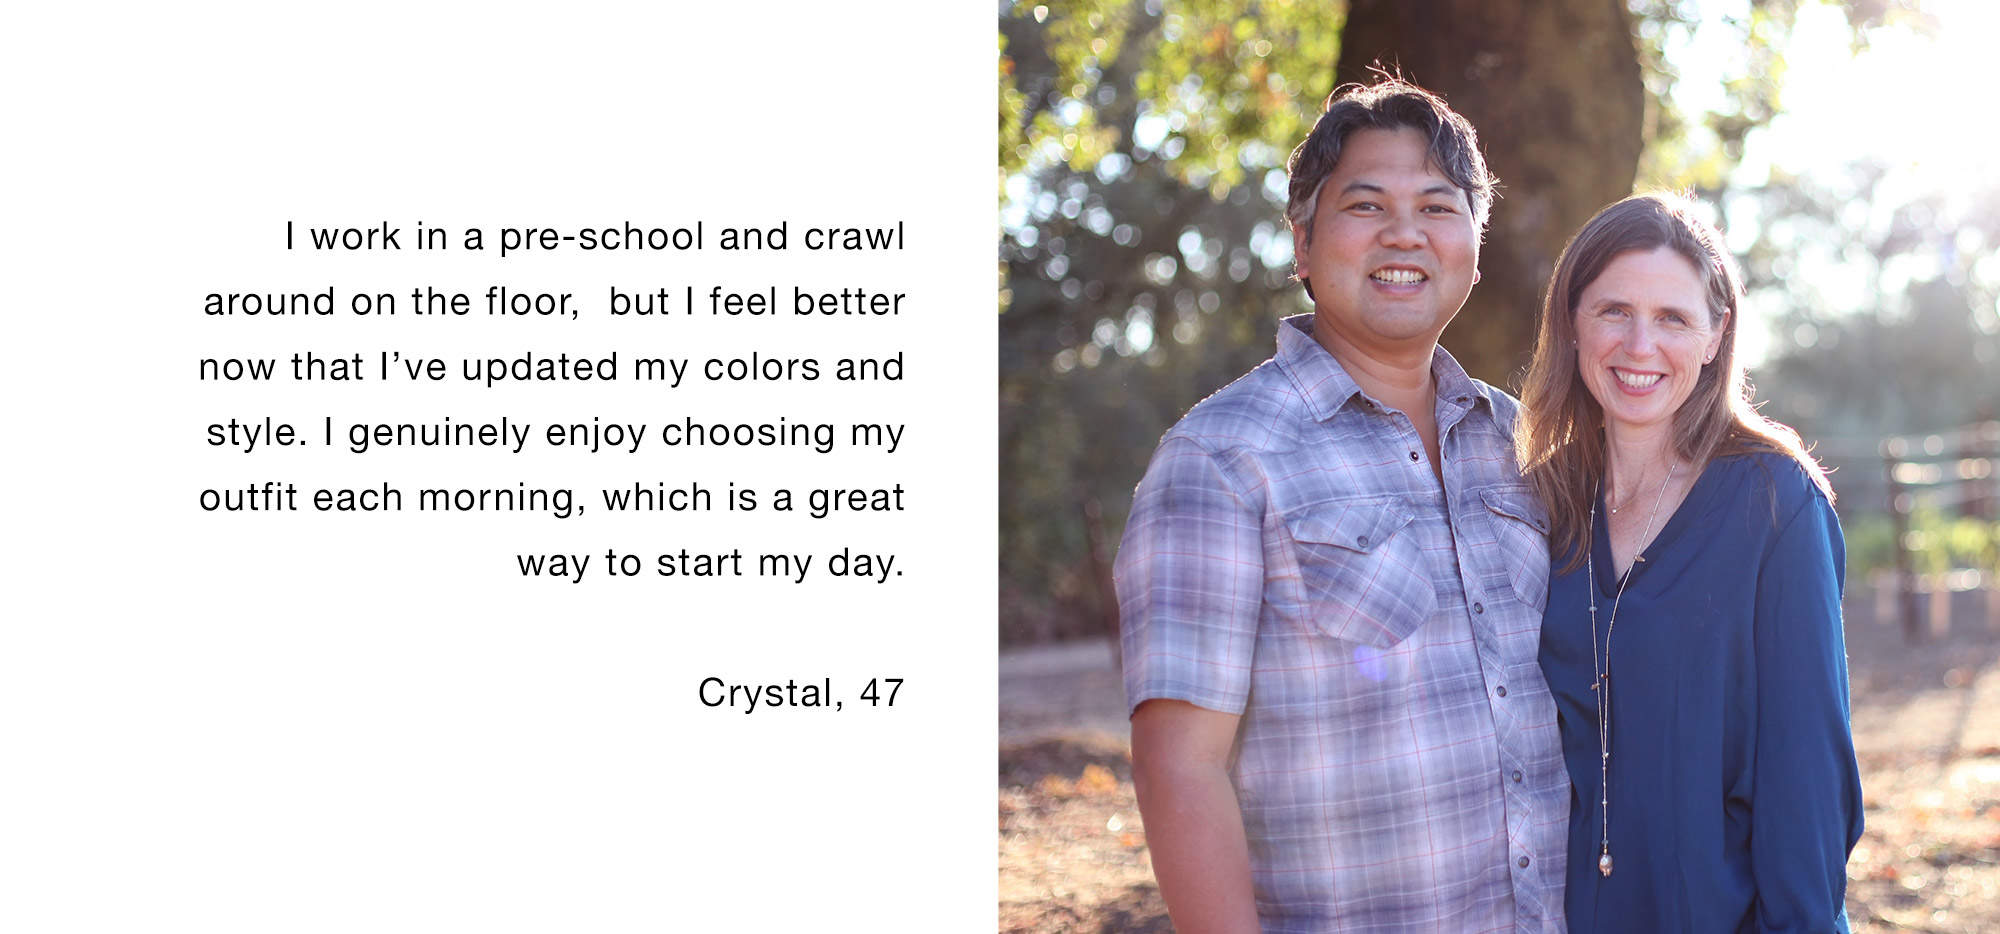 I work in a pre-school and crawl around on the floor, but I feel better now that I've updated my colors and style. I genuinely enjoy choosing my outfit each morning, which is a great way to start my day. Crystal, 47